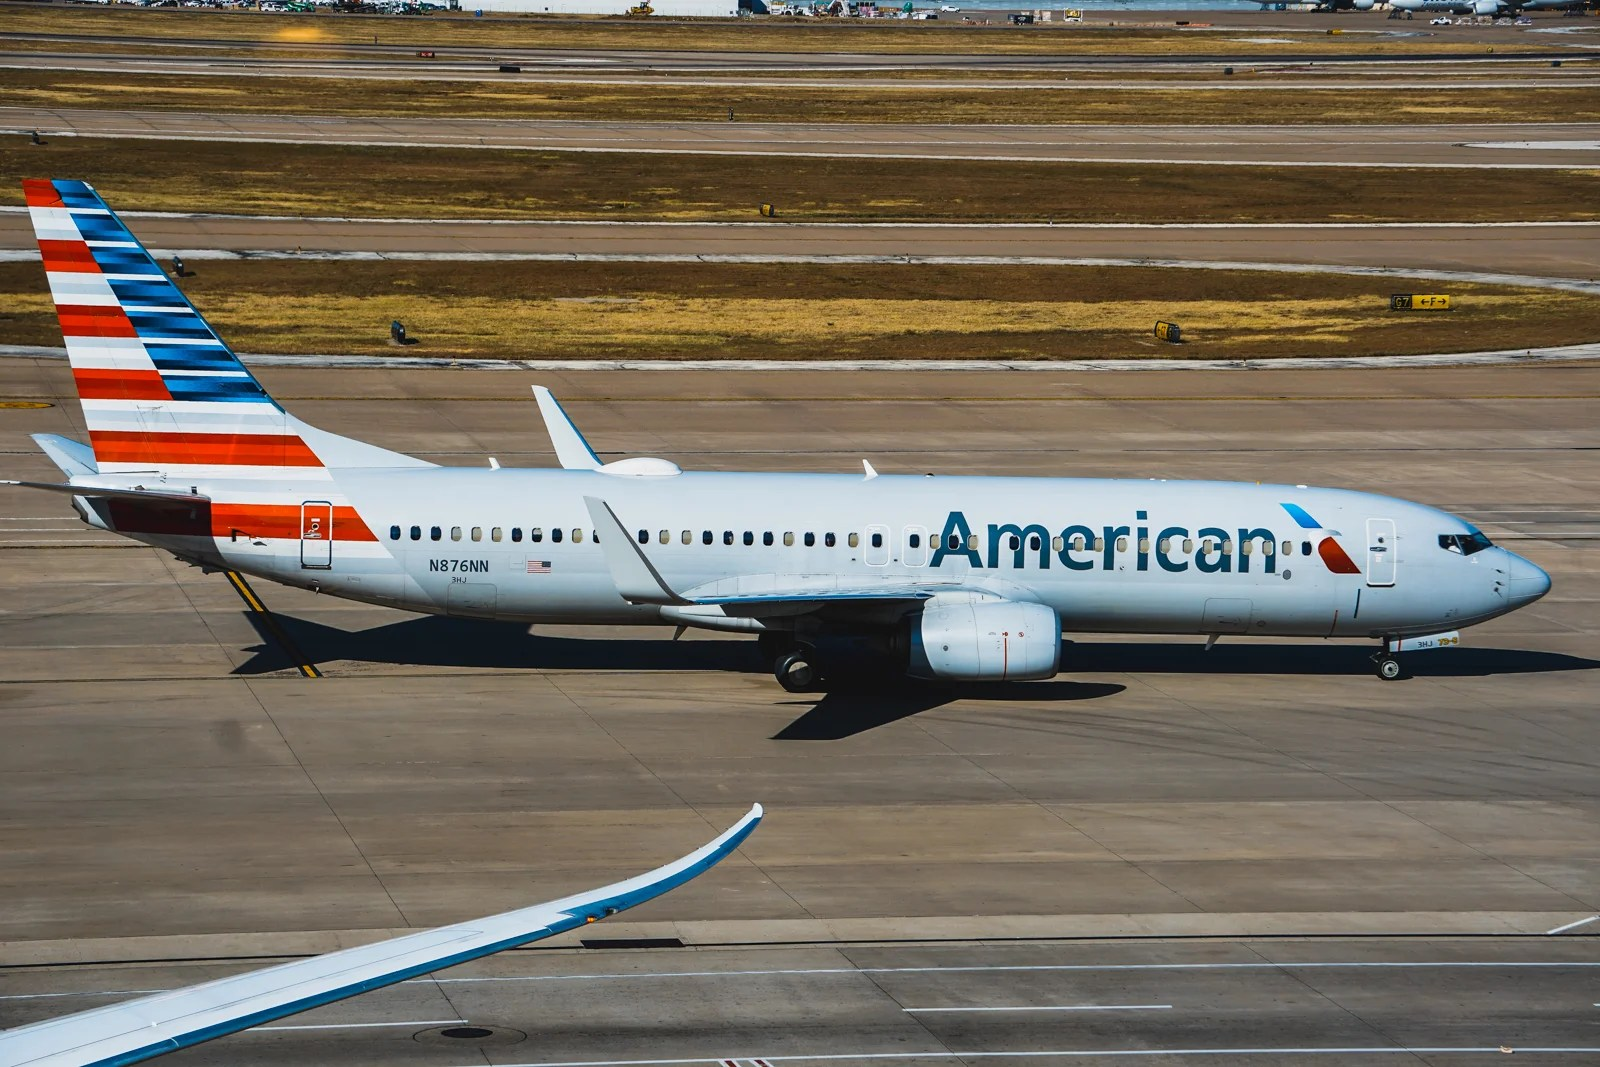 Why the Boeing 737 will never take the place of the 757